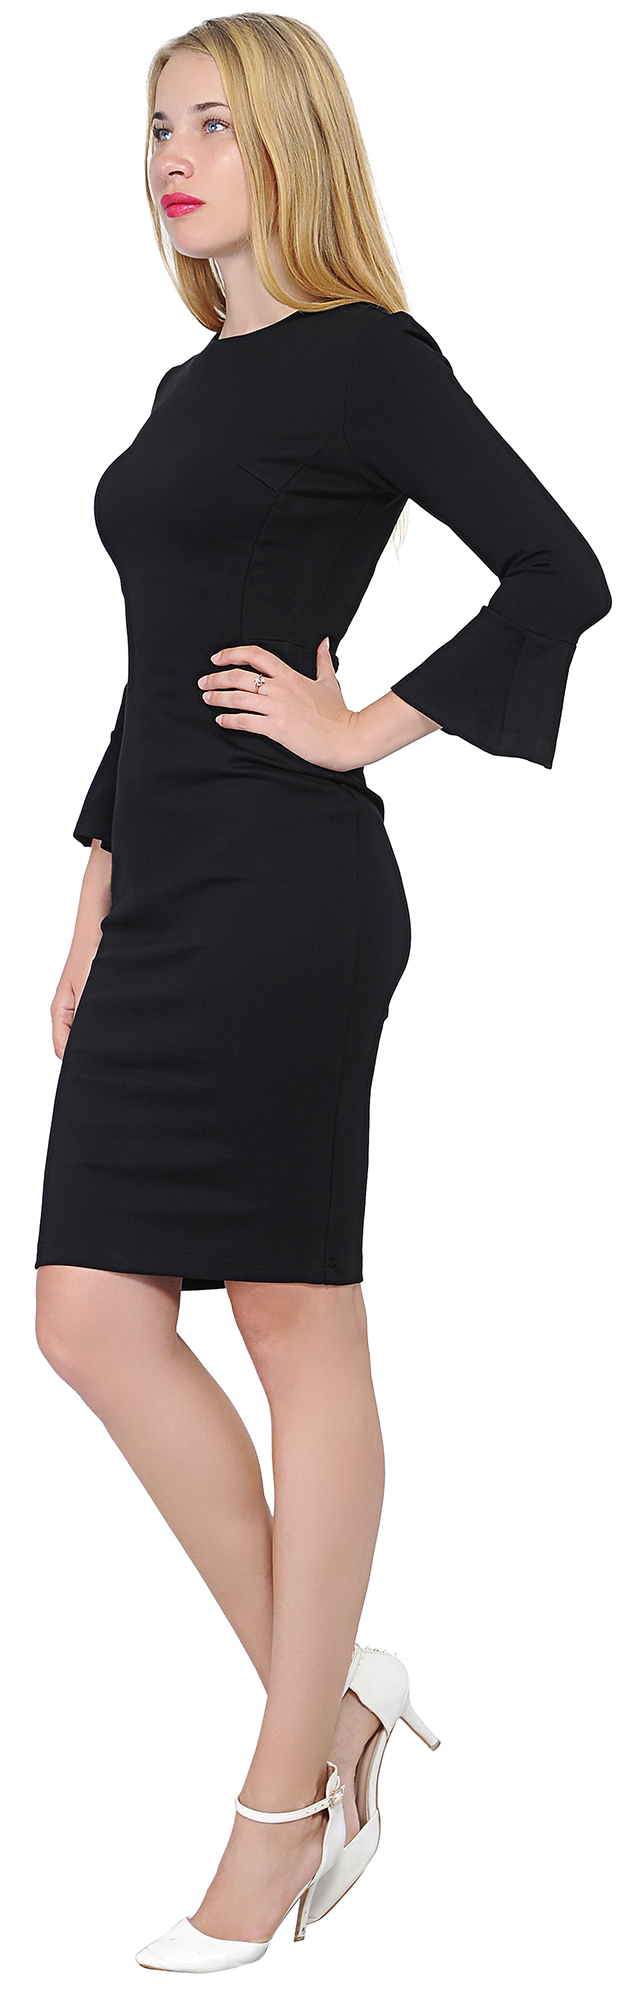 Details about MARYCRAFTS WOMENS FLOUNCE FLARE SLEEVE PENCIL DRESS COCKTAIL FITTED DRESSES